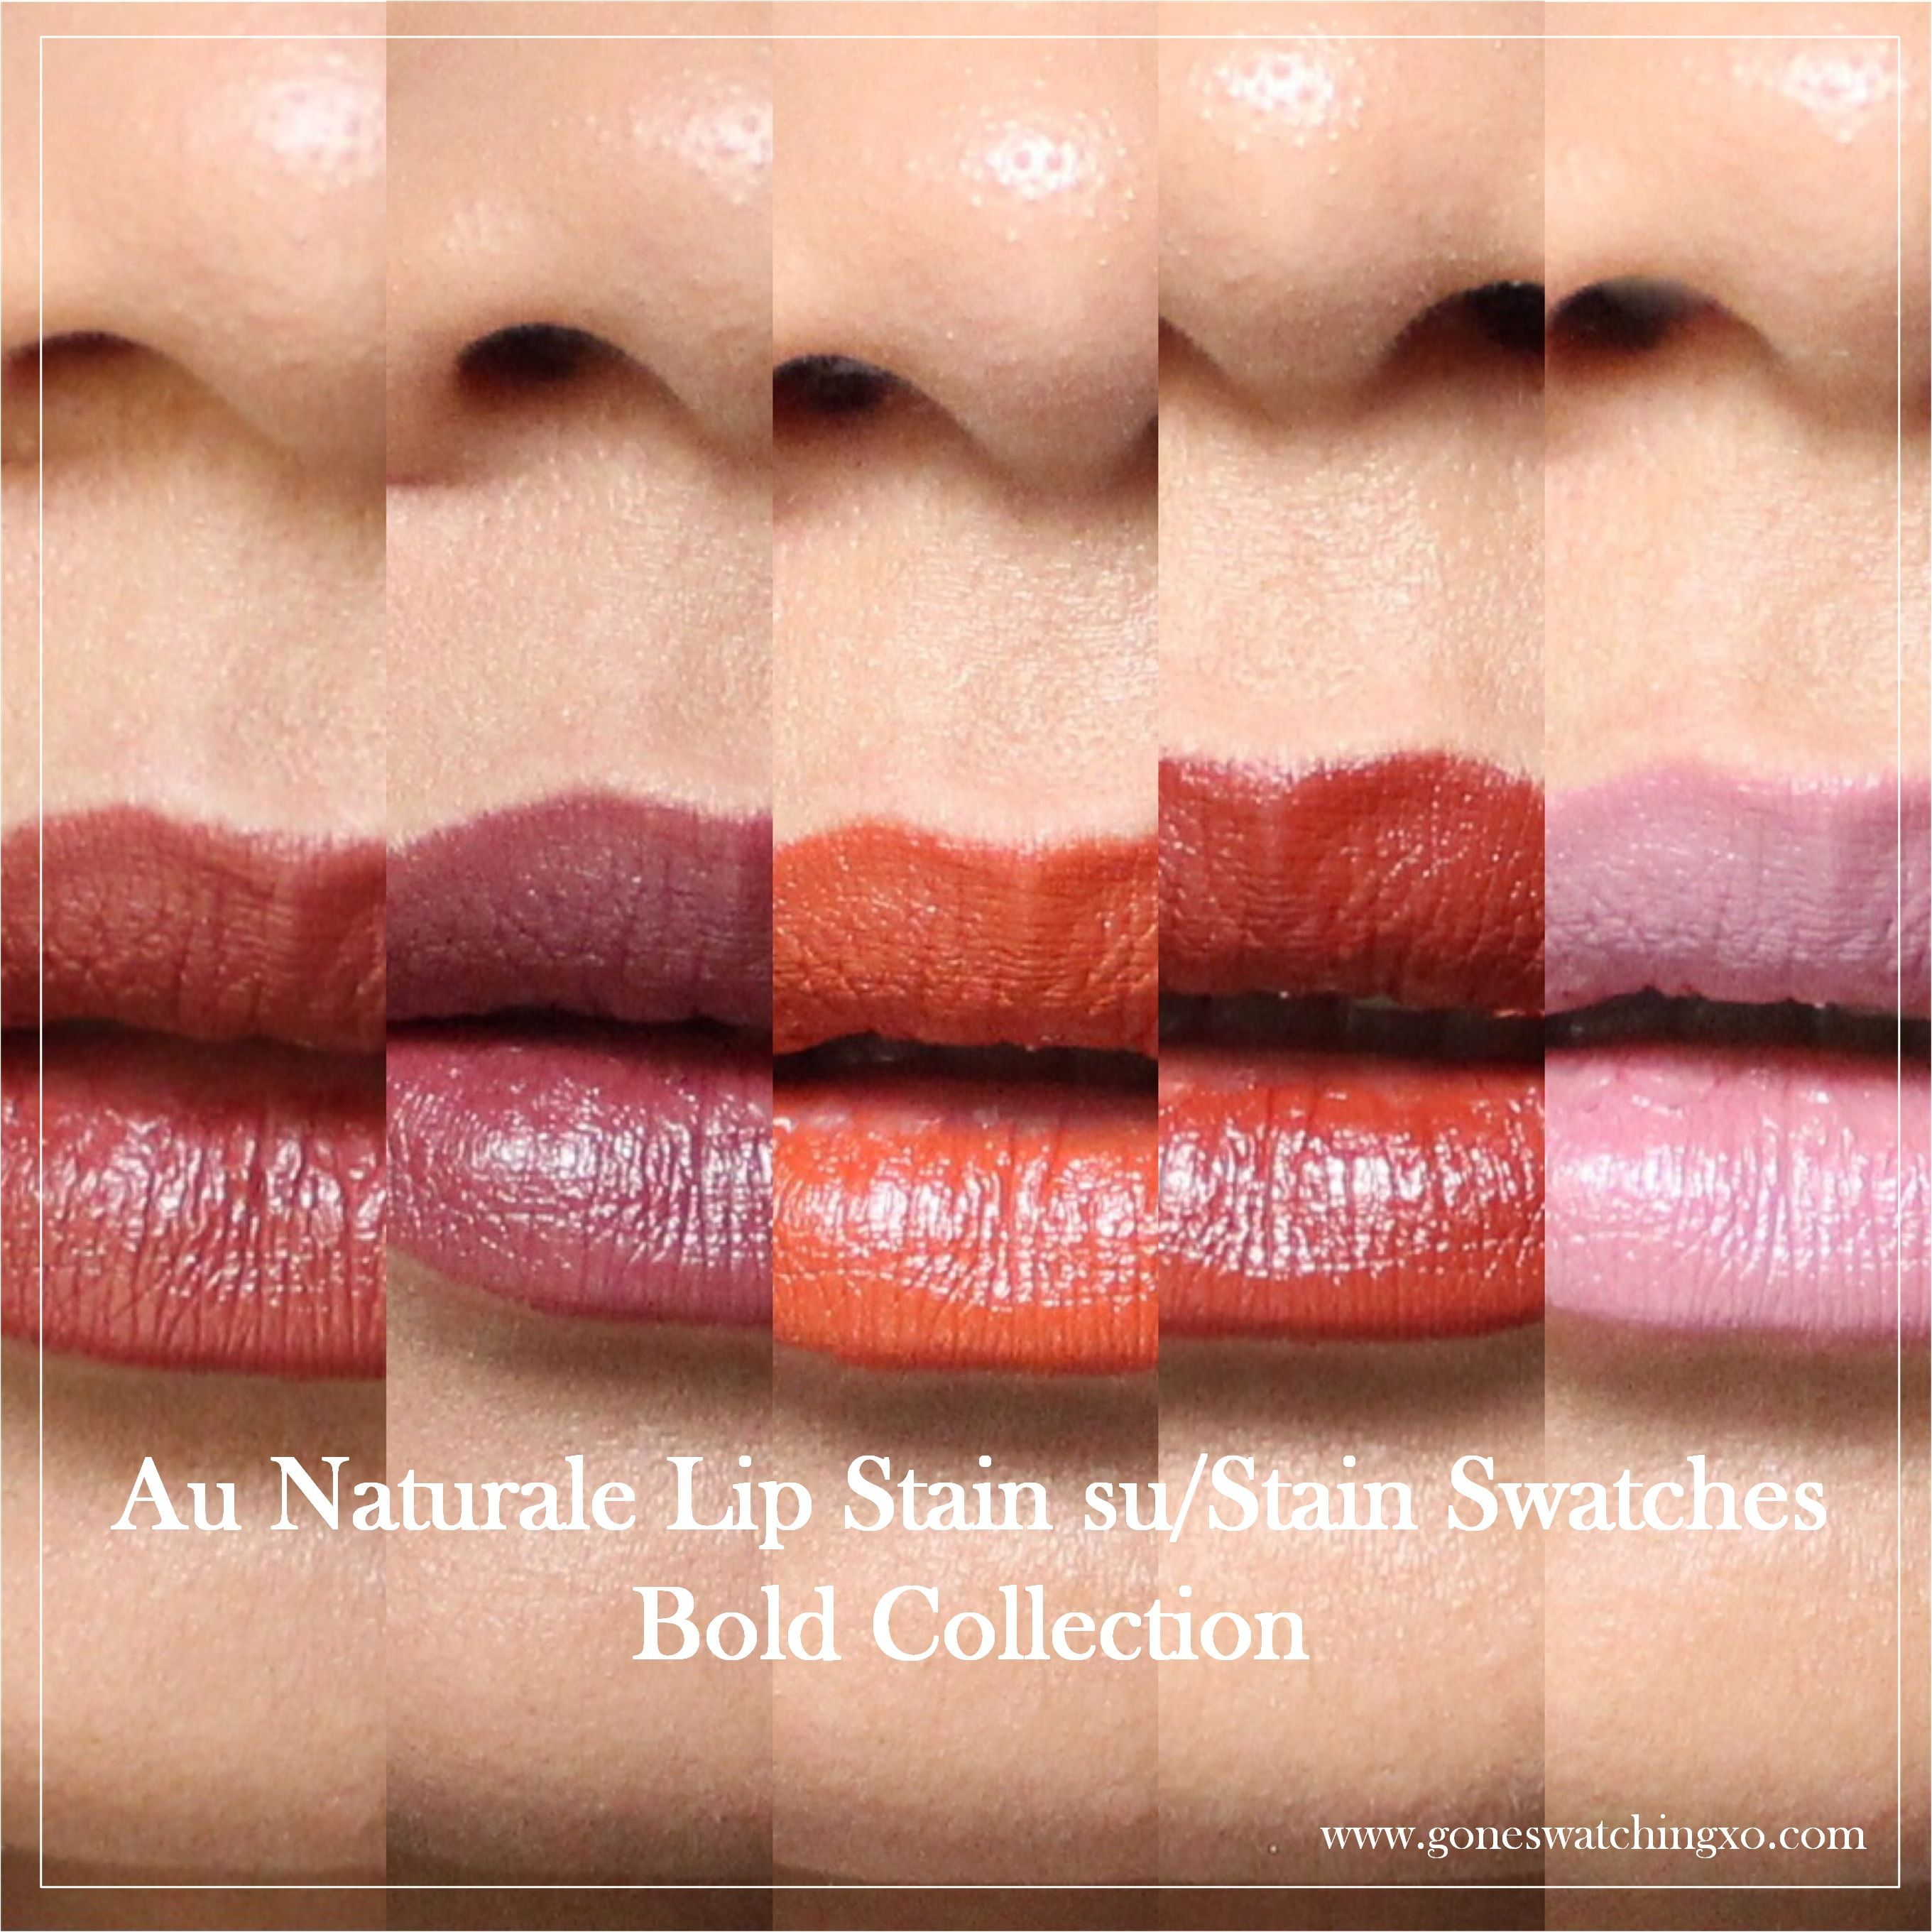 Bold Collection Lipstain sustain Review and Swatches